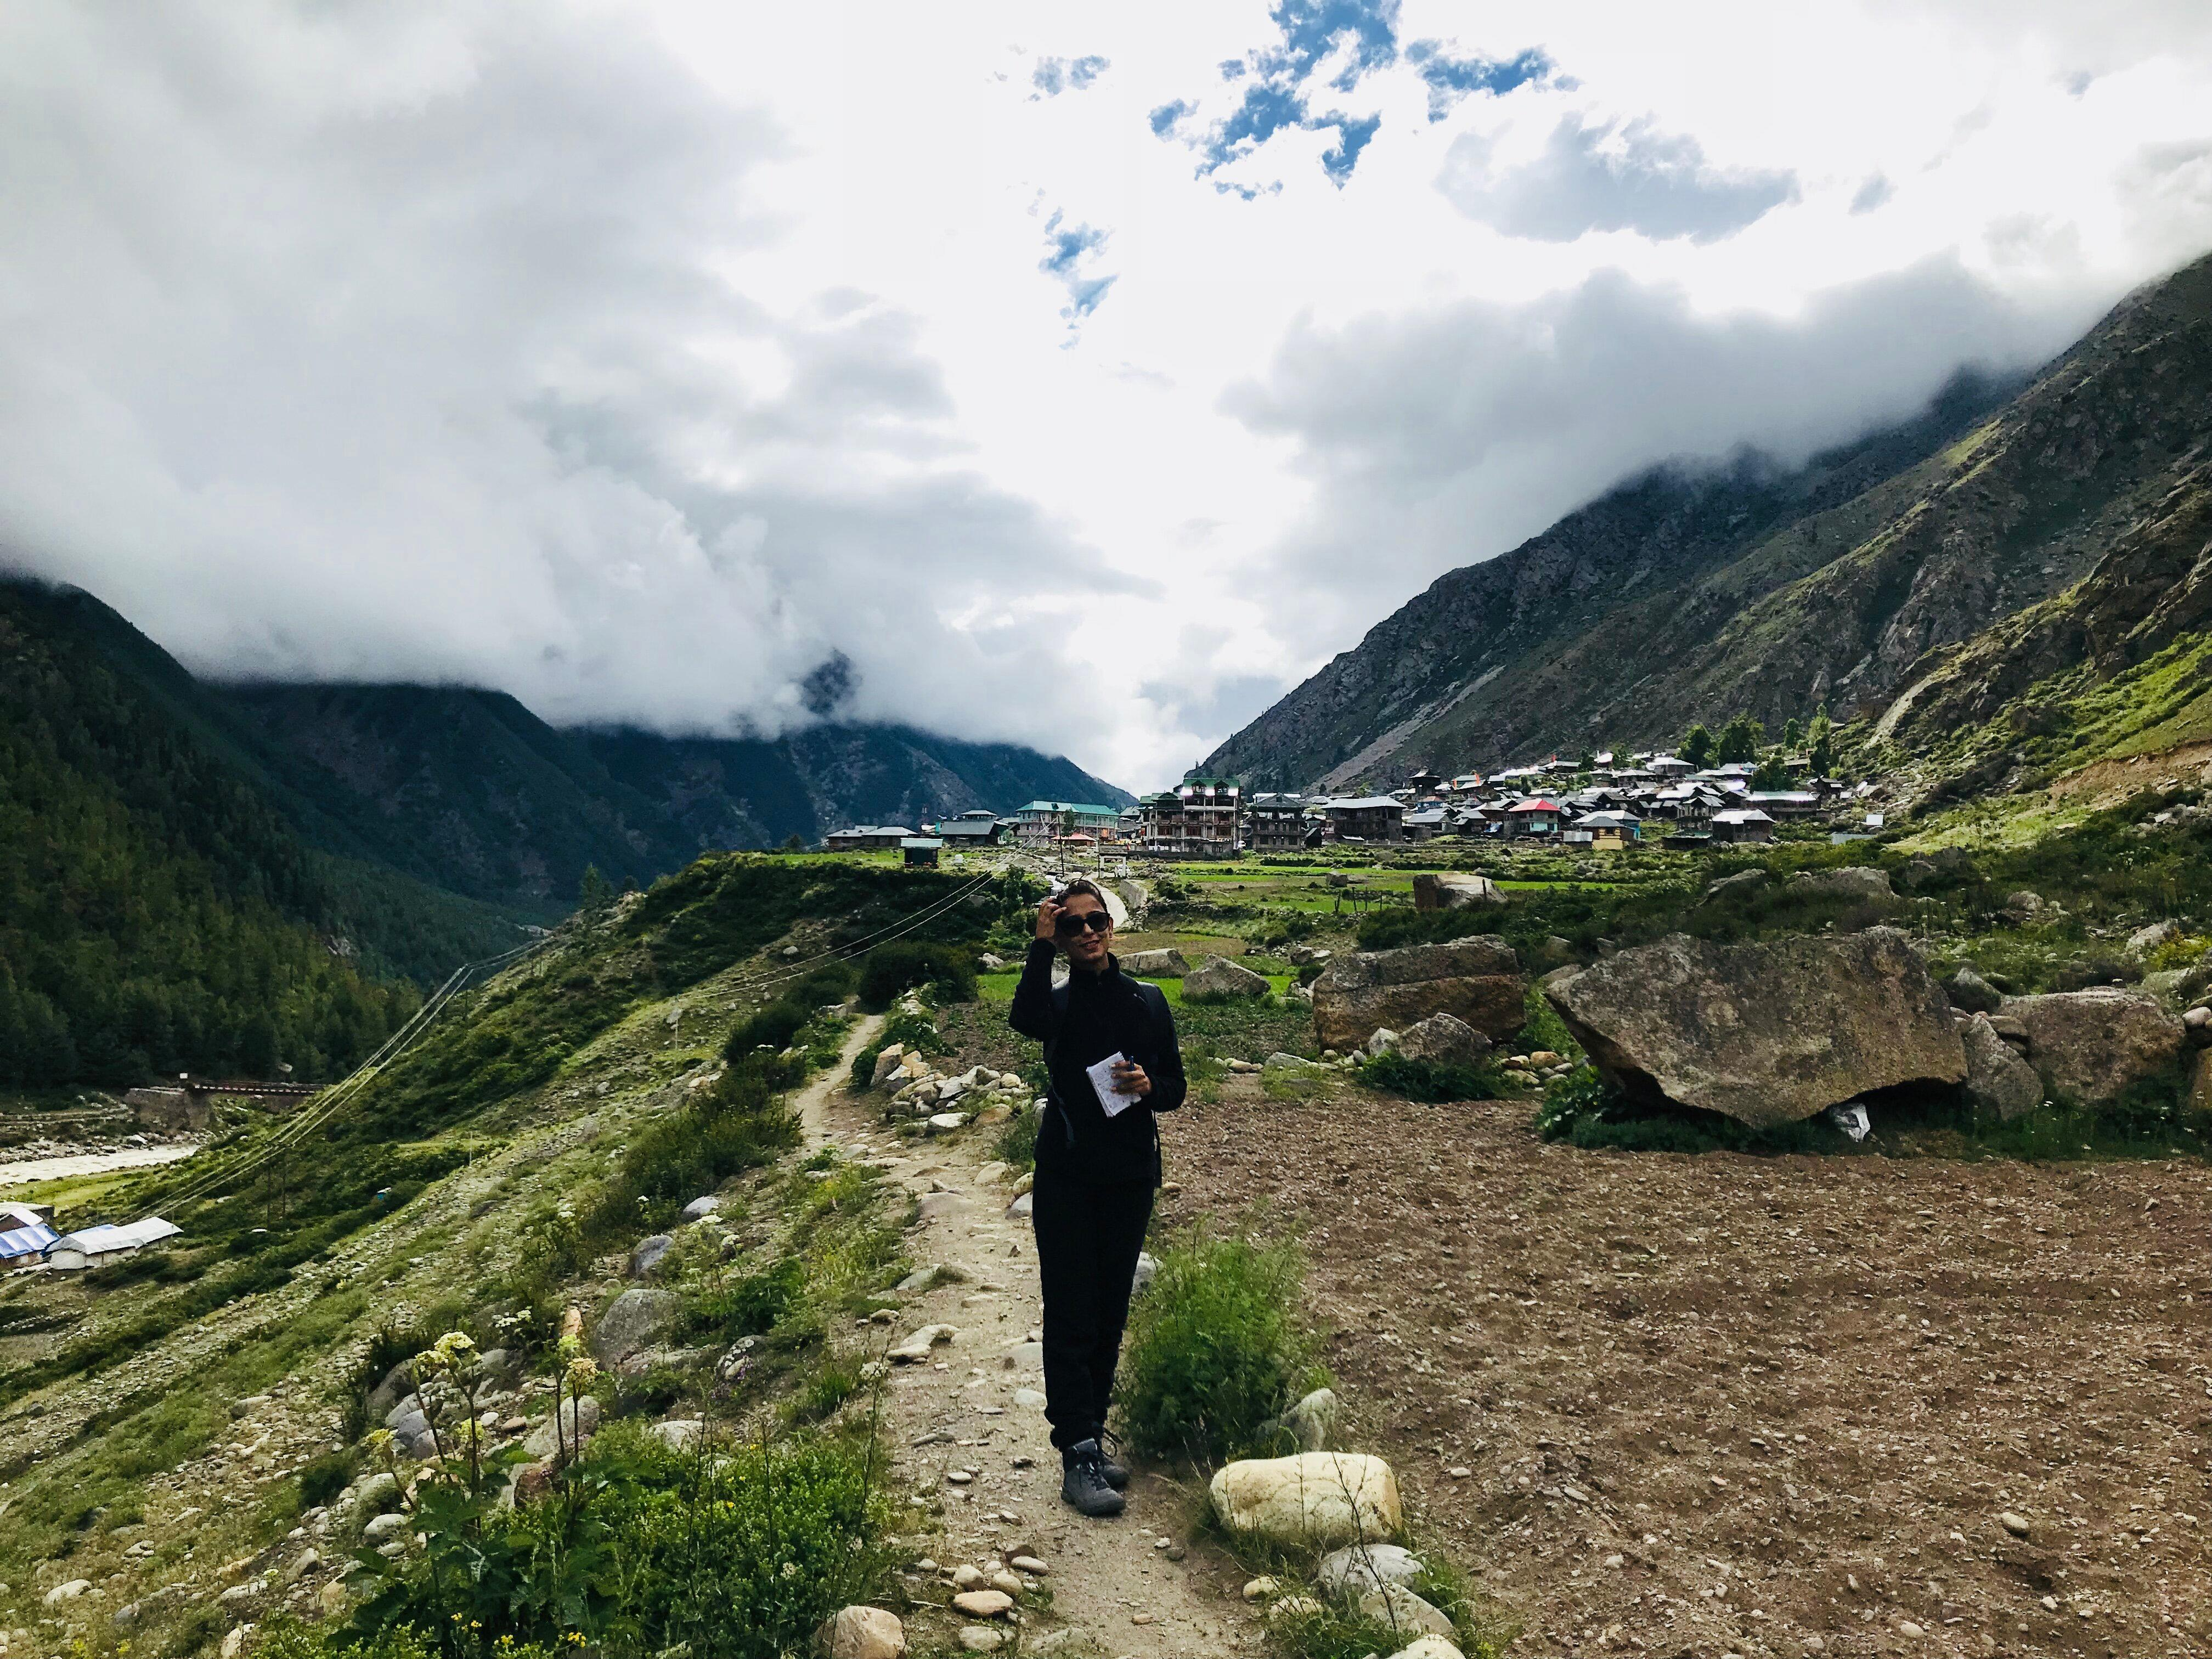 Smriti Singh on Backpacking for Women Travellers